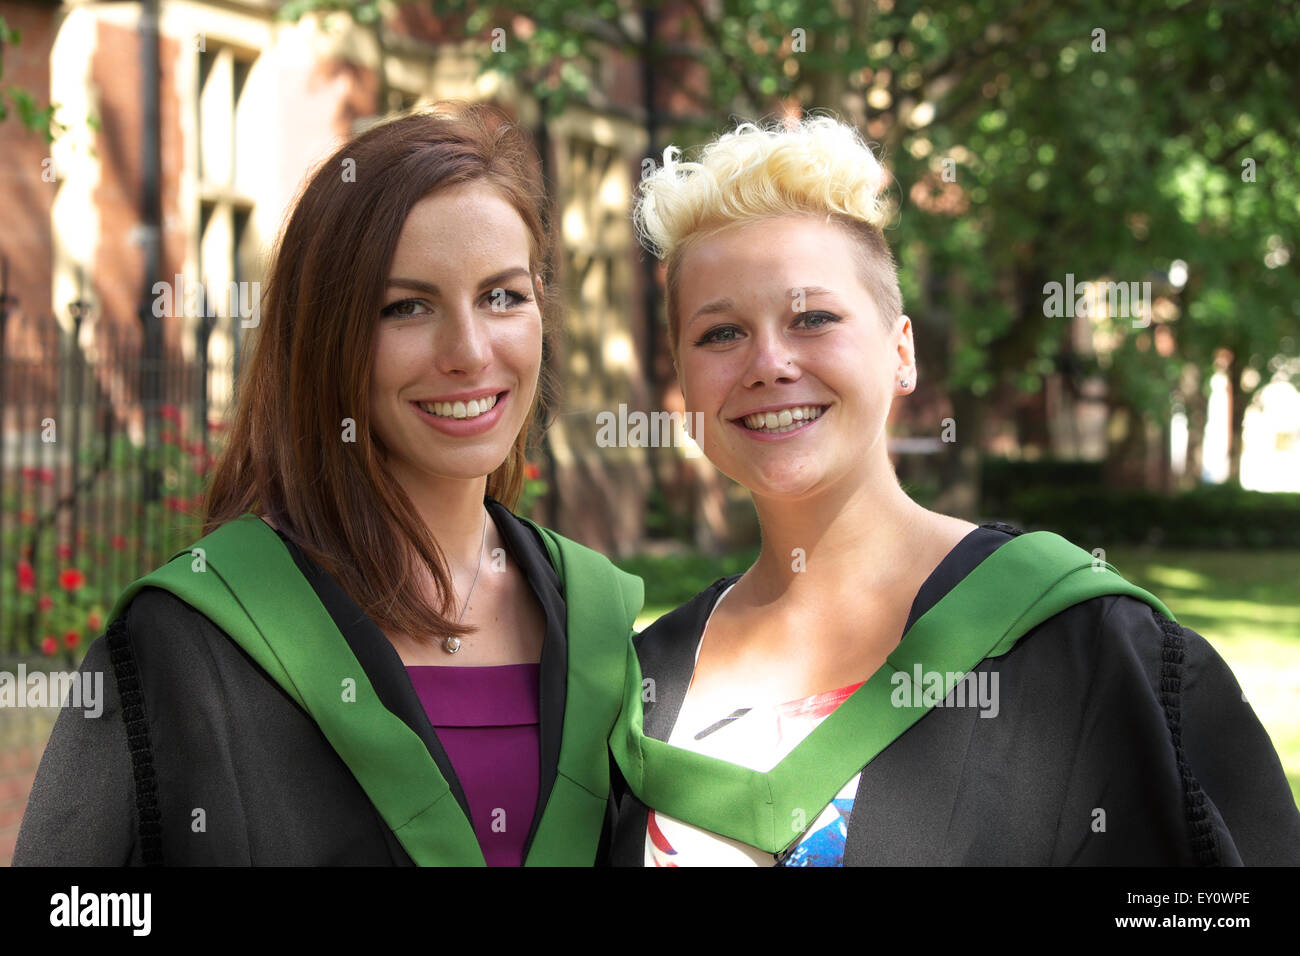 Two Female Graduate Students Wearing Gowns For Their Graduation